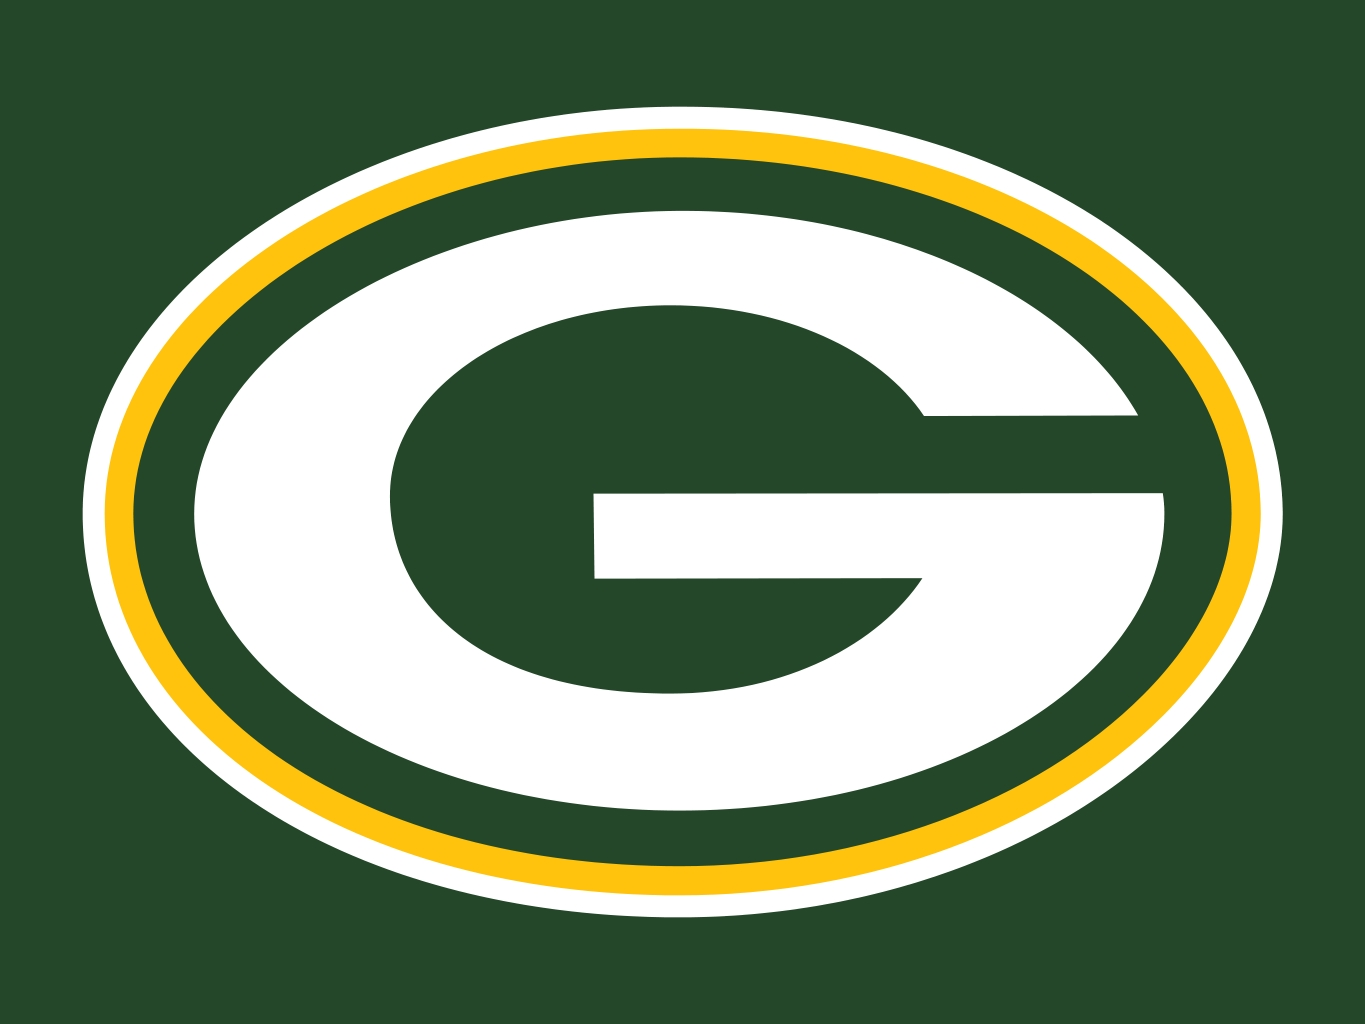 Bay Packers wallpaper wallpaper ever Green Bay Packers wallpapers 1365x1024